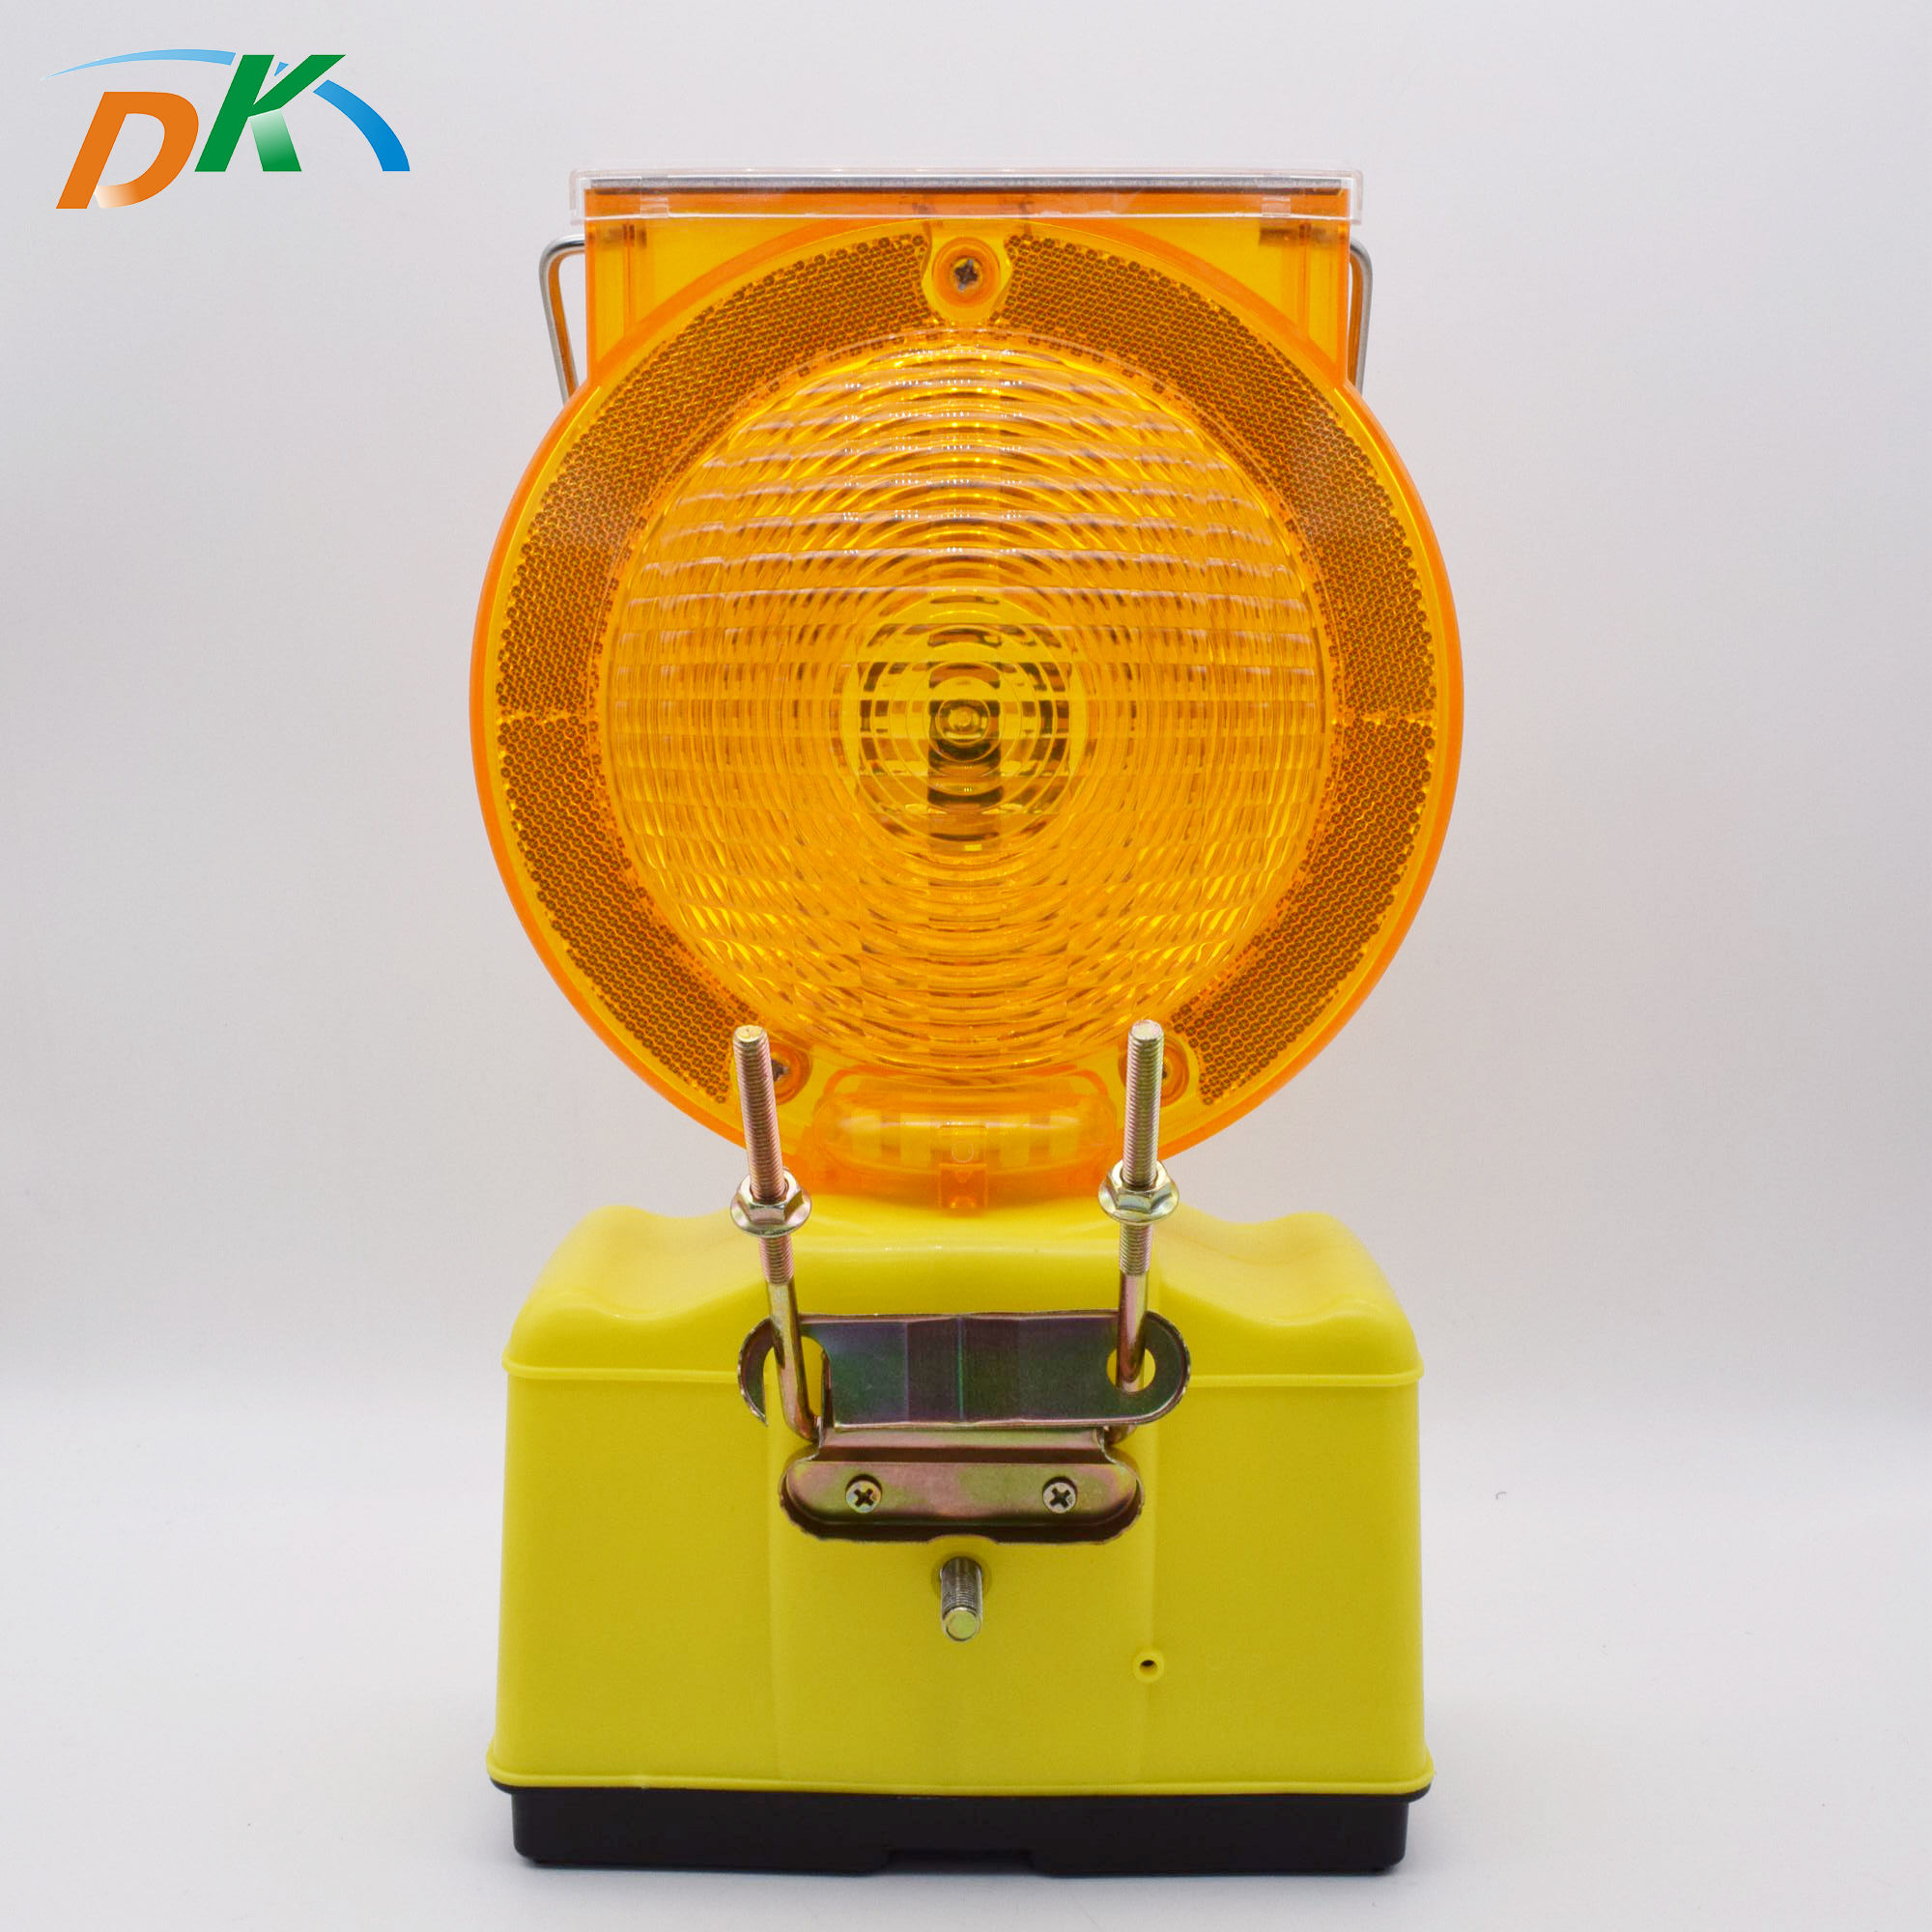 Hight-quality PS LED Solar Powered Traffic Barricade Warning light,led warning light/blinking led solar lights